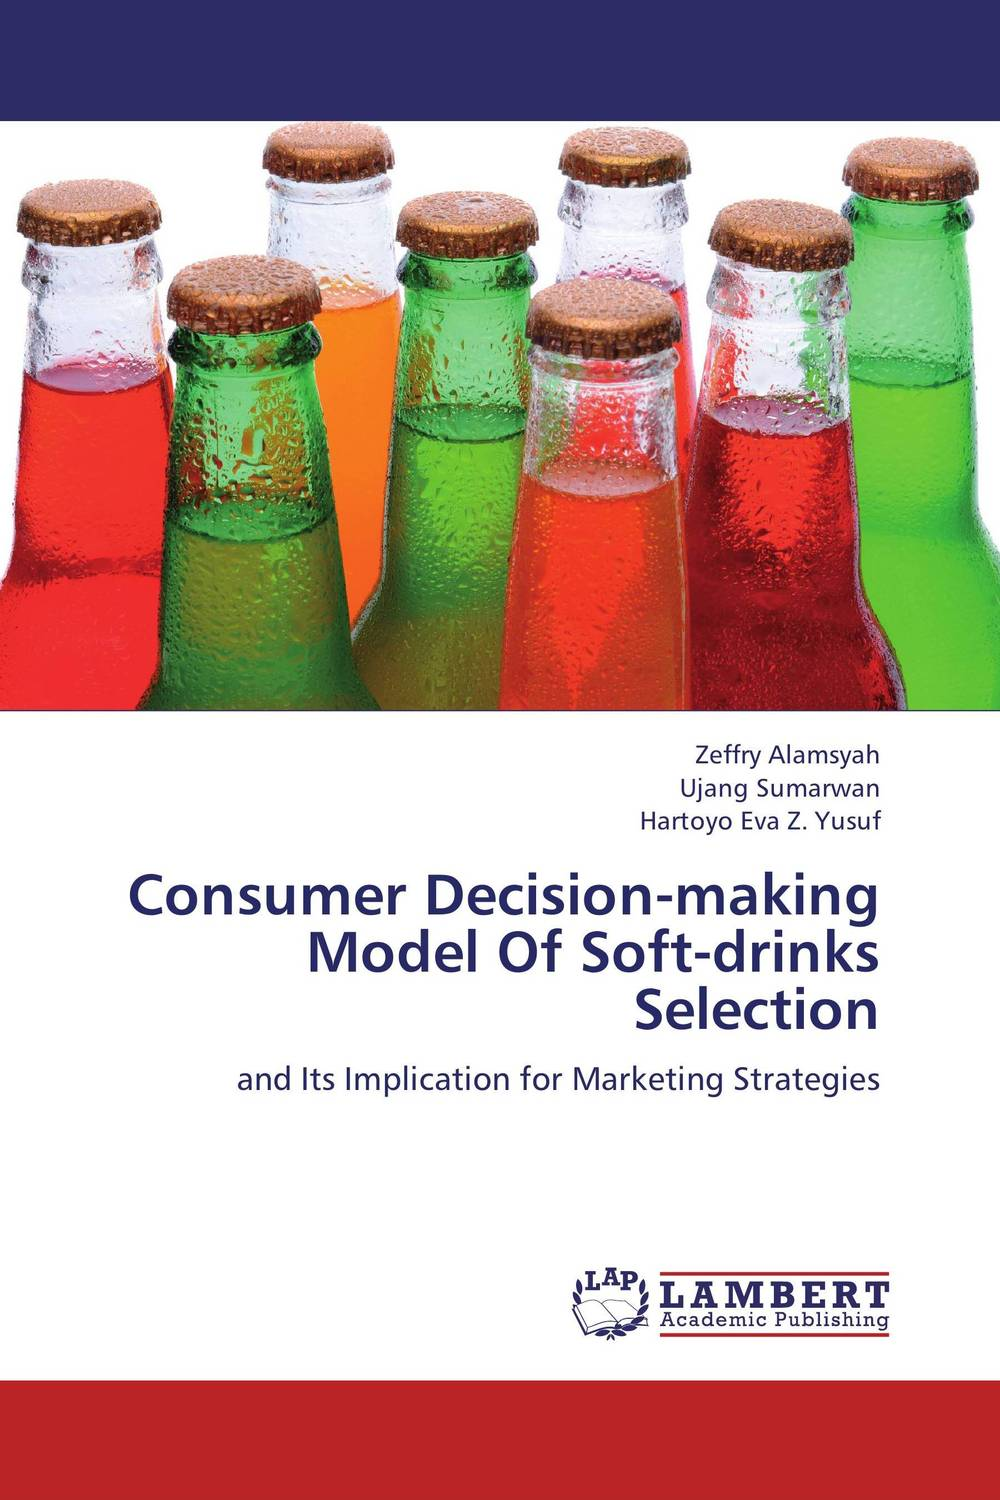 Consumer Decision-making Model Of Soft-drinks Selection david holloman m china catalyst powering global growth by reaching the fastest growing consumer market in the world